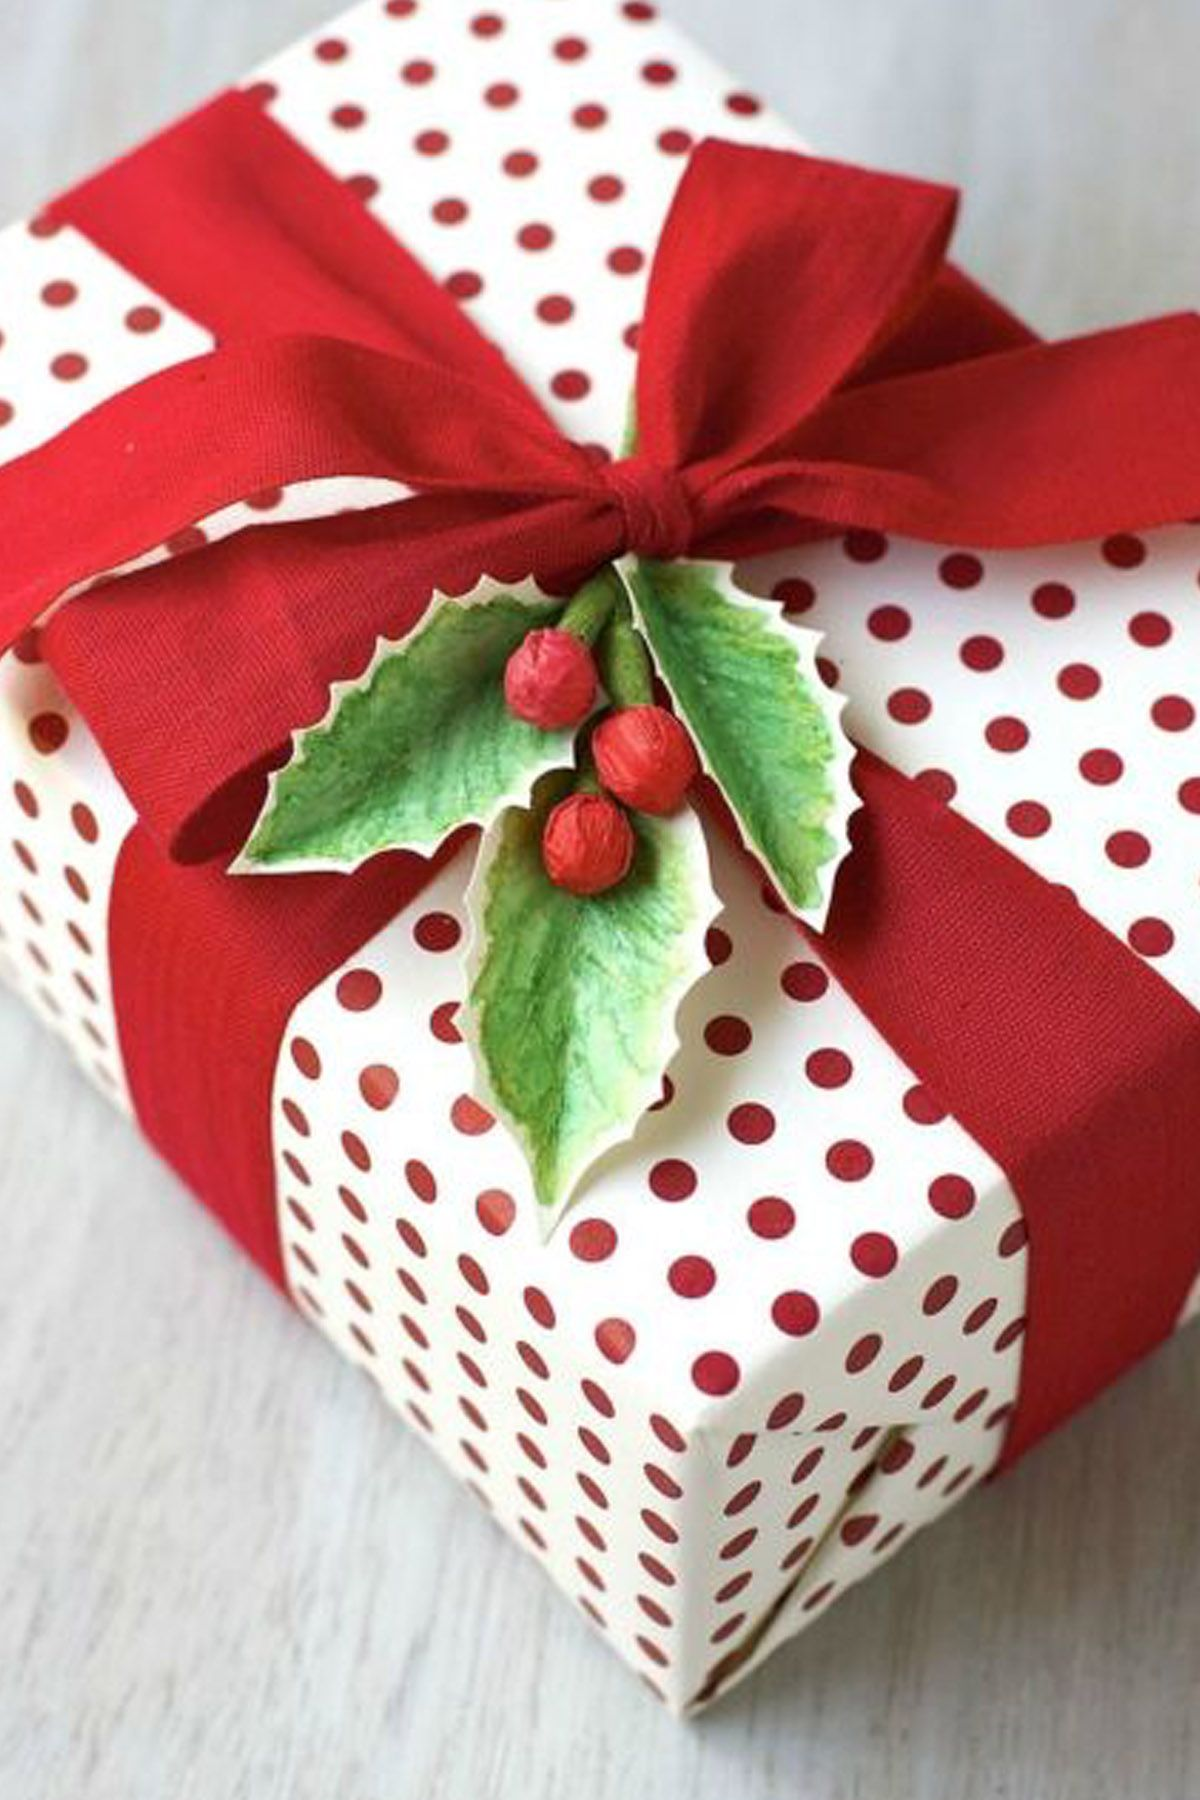 gift wrapping ideas Boughs of Holly & 45 Christmas Gift Wrapping Ideas - Creative DIY Holiday Gift Wrap